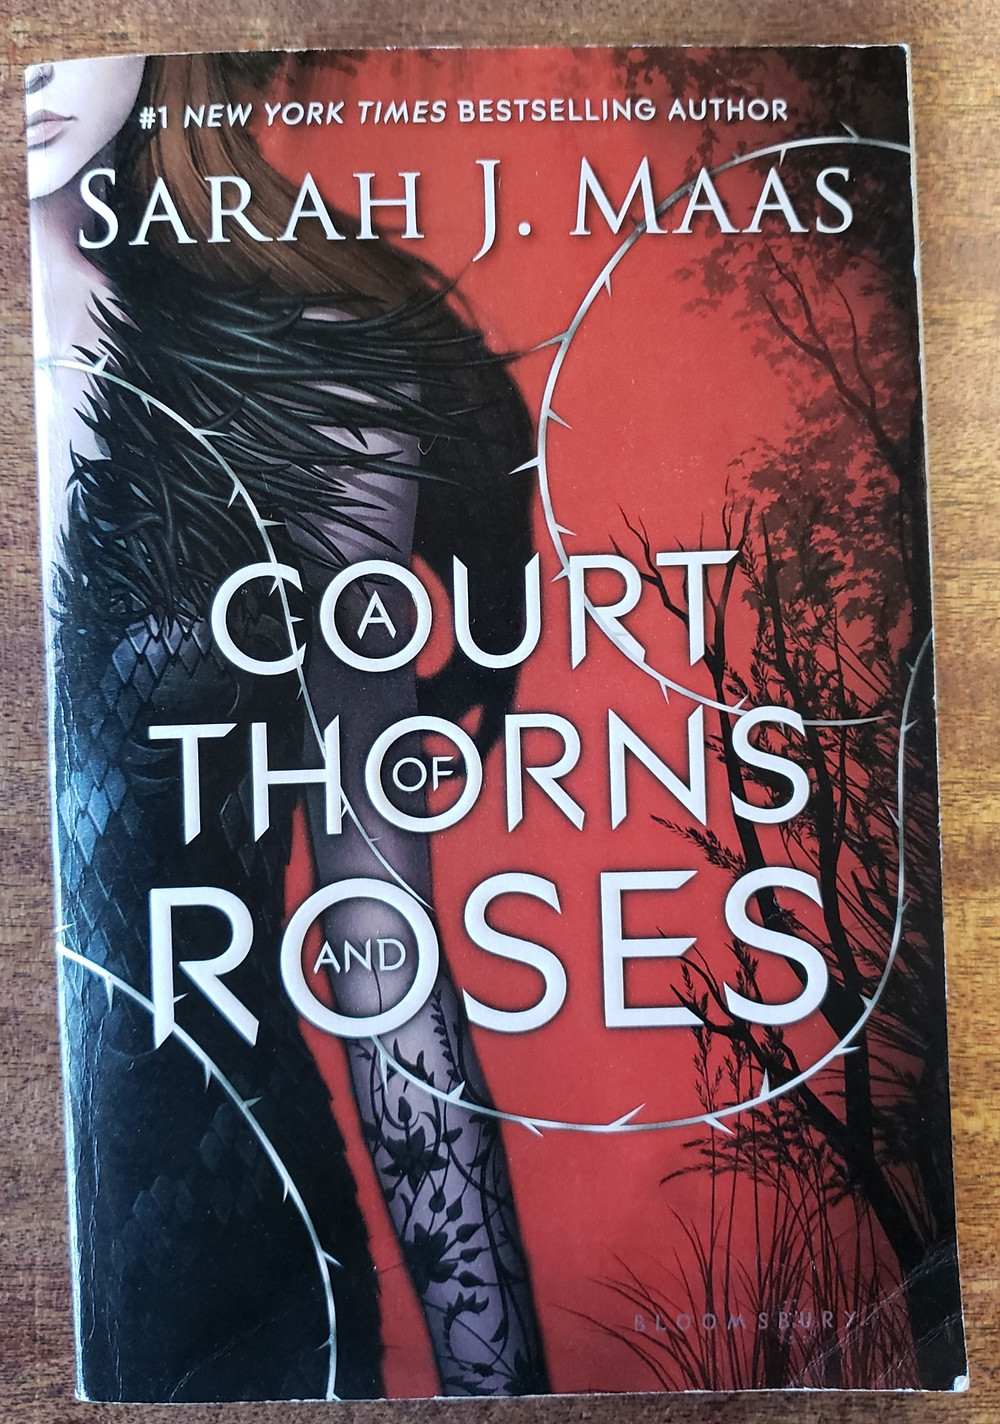 Front cover of the book A Court of Thorns and Roses by Sarah J. Maas.